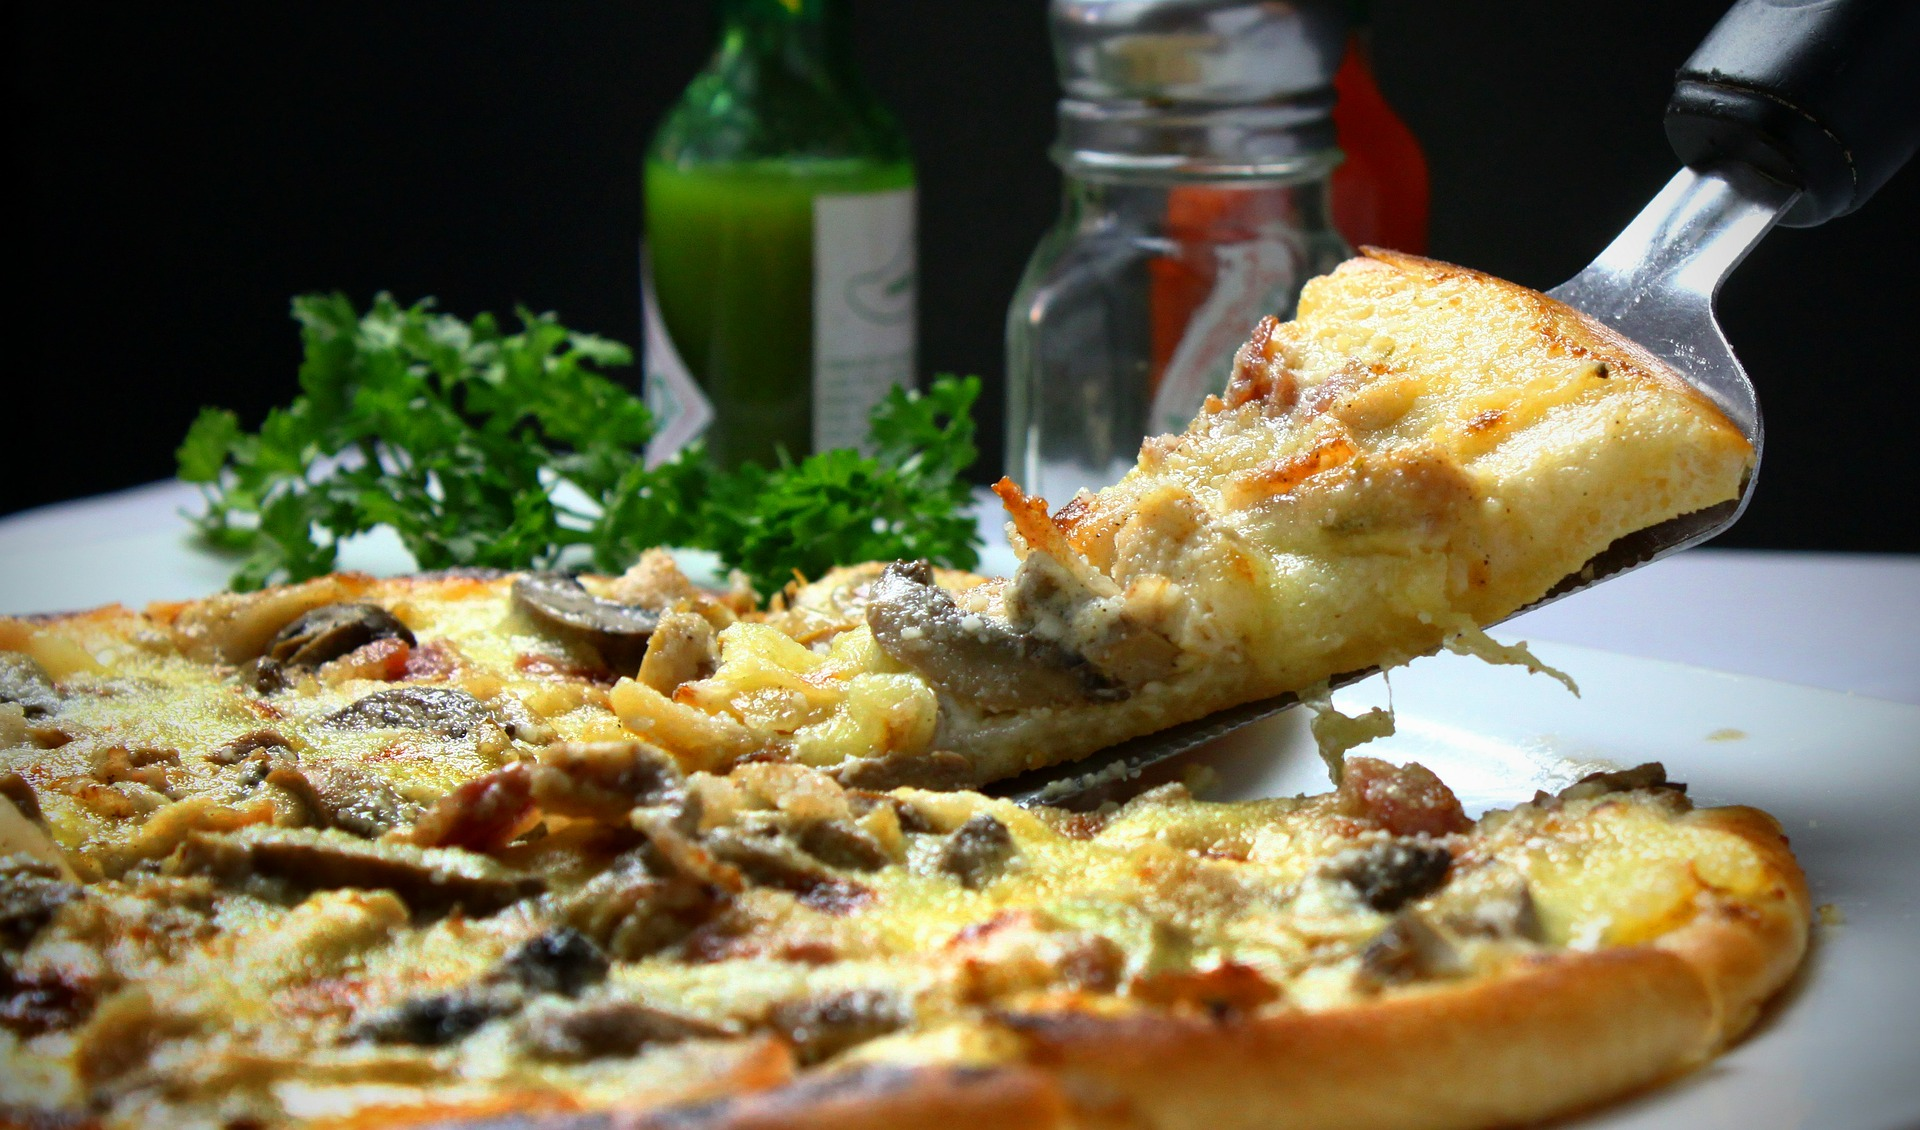 Image of pizza depicting Great places to eat pizza in the United States.